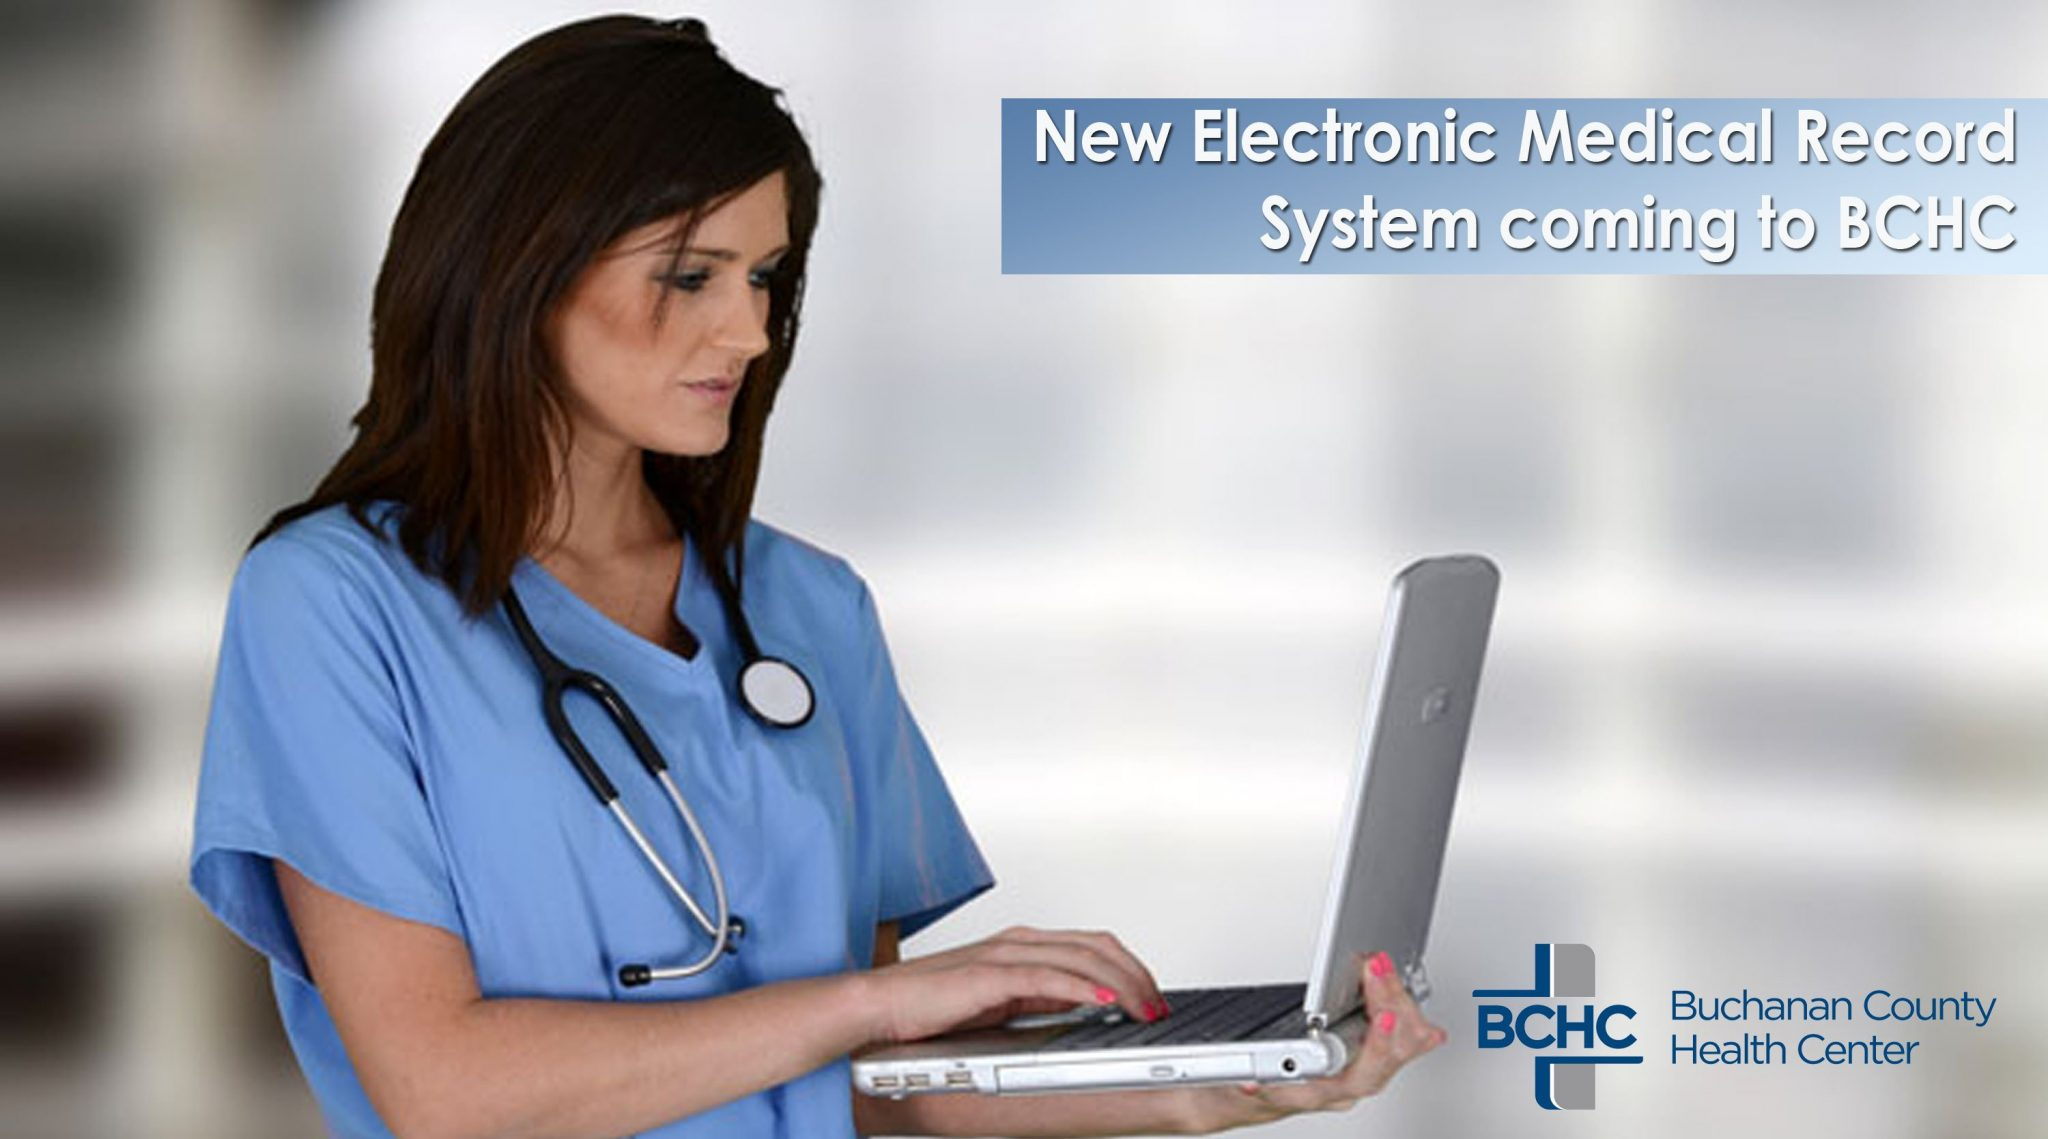 BCHC Introduces New Electronic Medical Record System